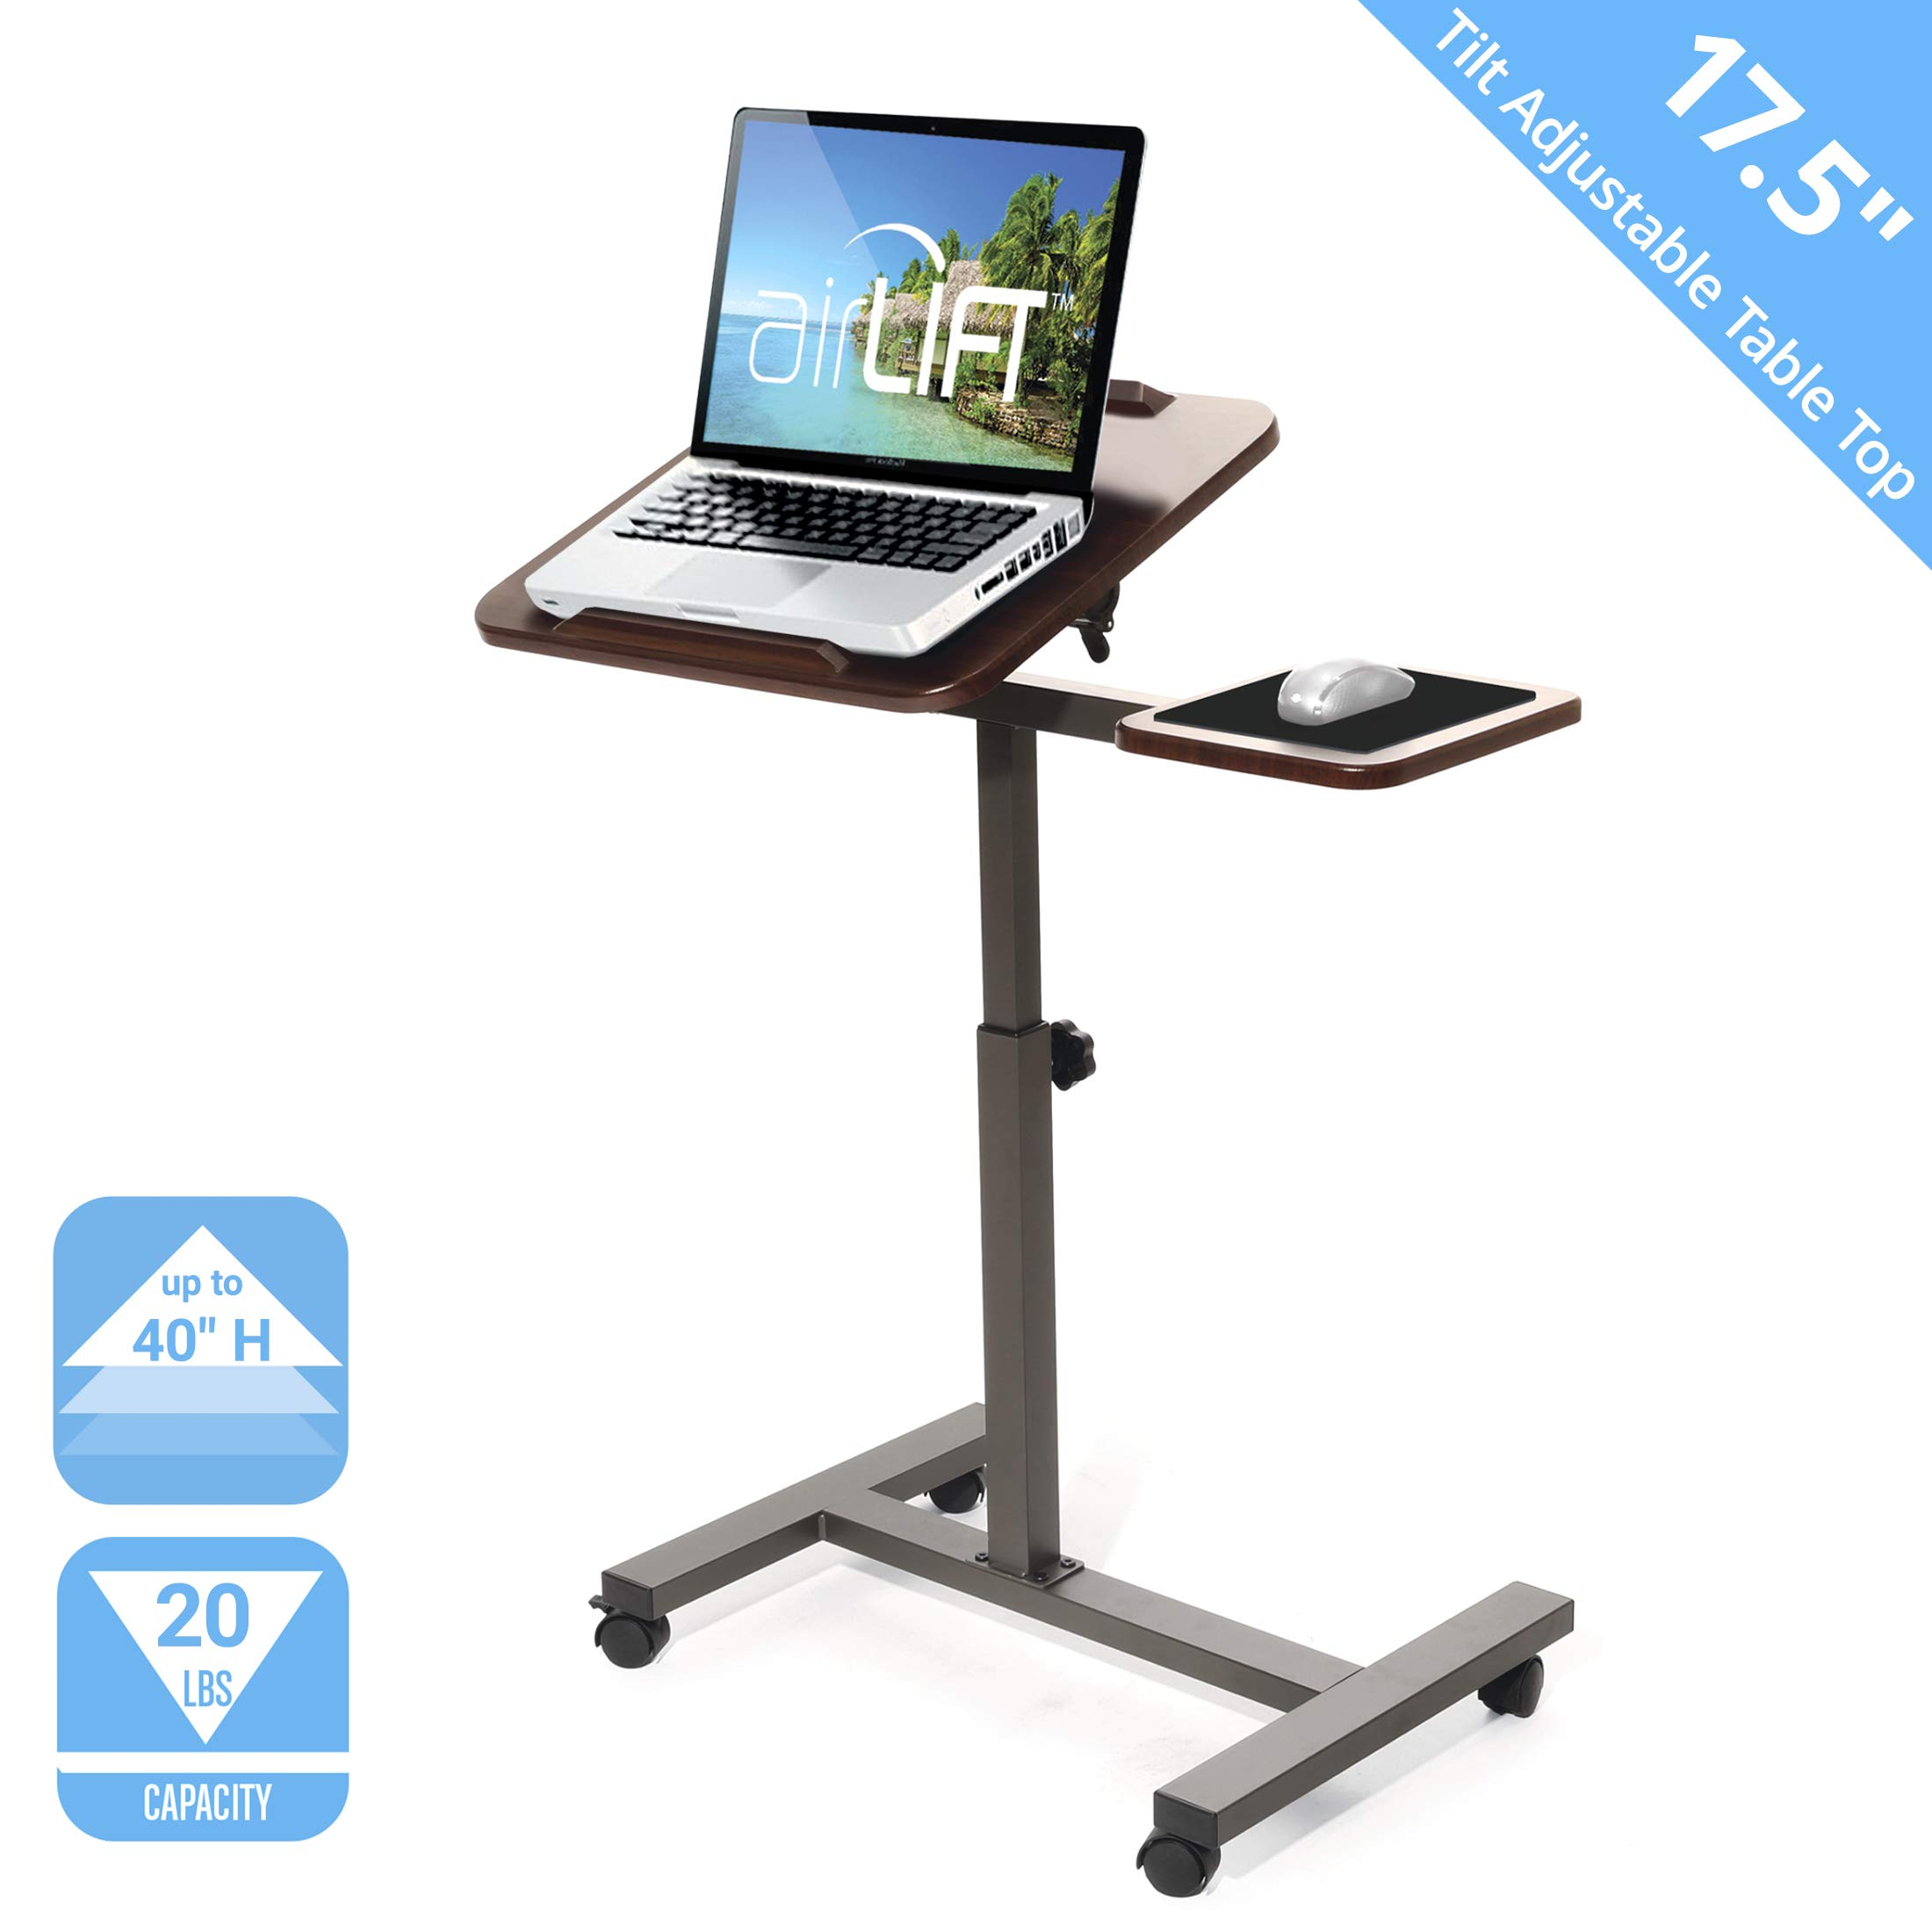 Seville Classics Tilting Sit-Stand Computer Desk Cart with Mouse Pad Table, Height-Adjustable from 27.5'' to 40'' H, Walnut by Seville Classics